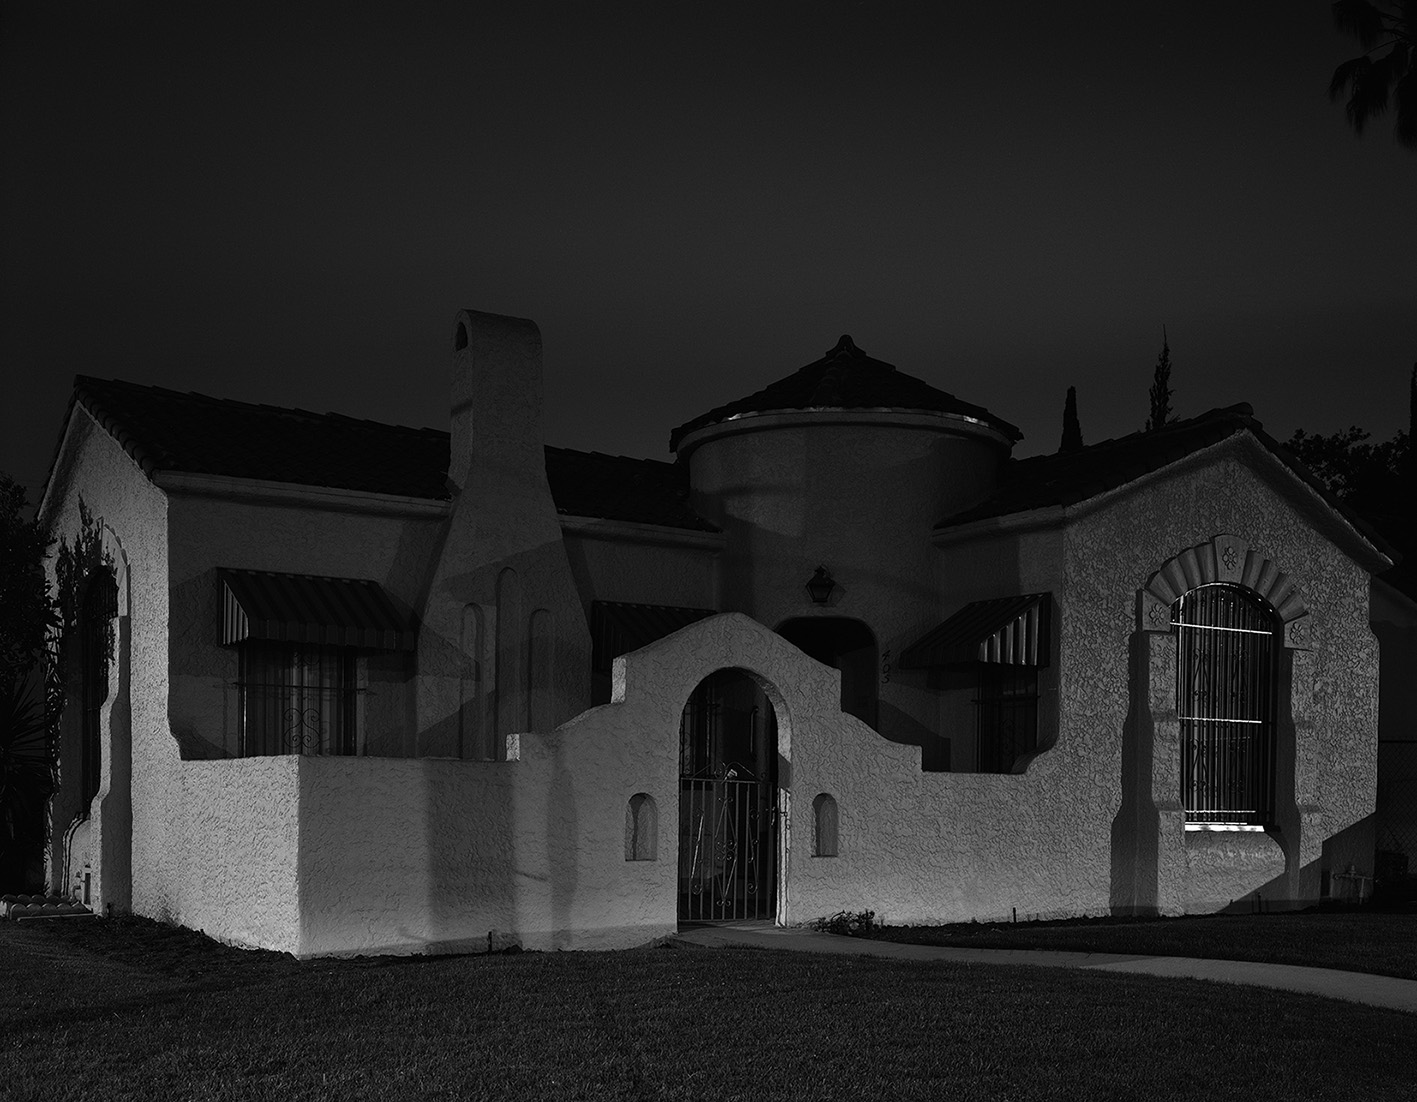 House at Night No. 2